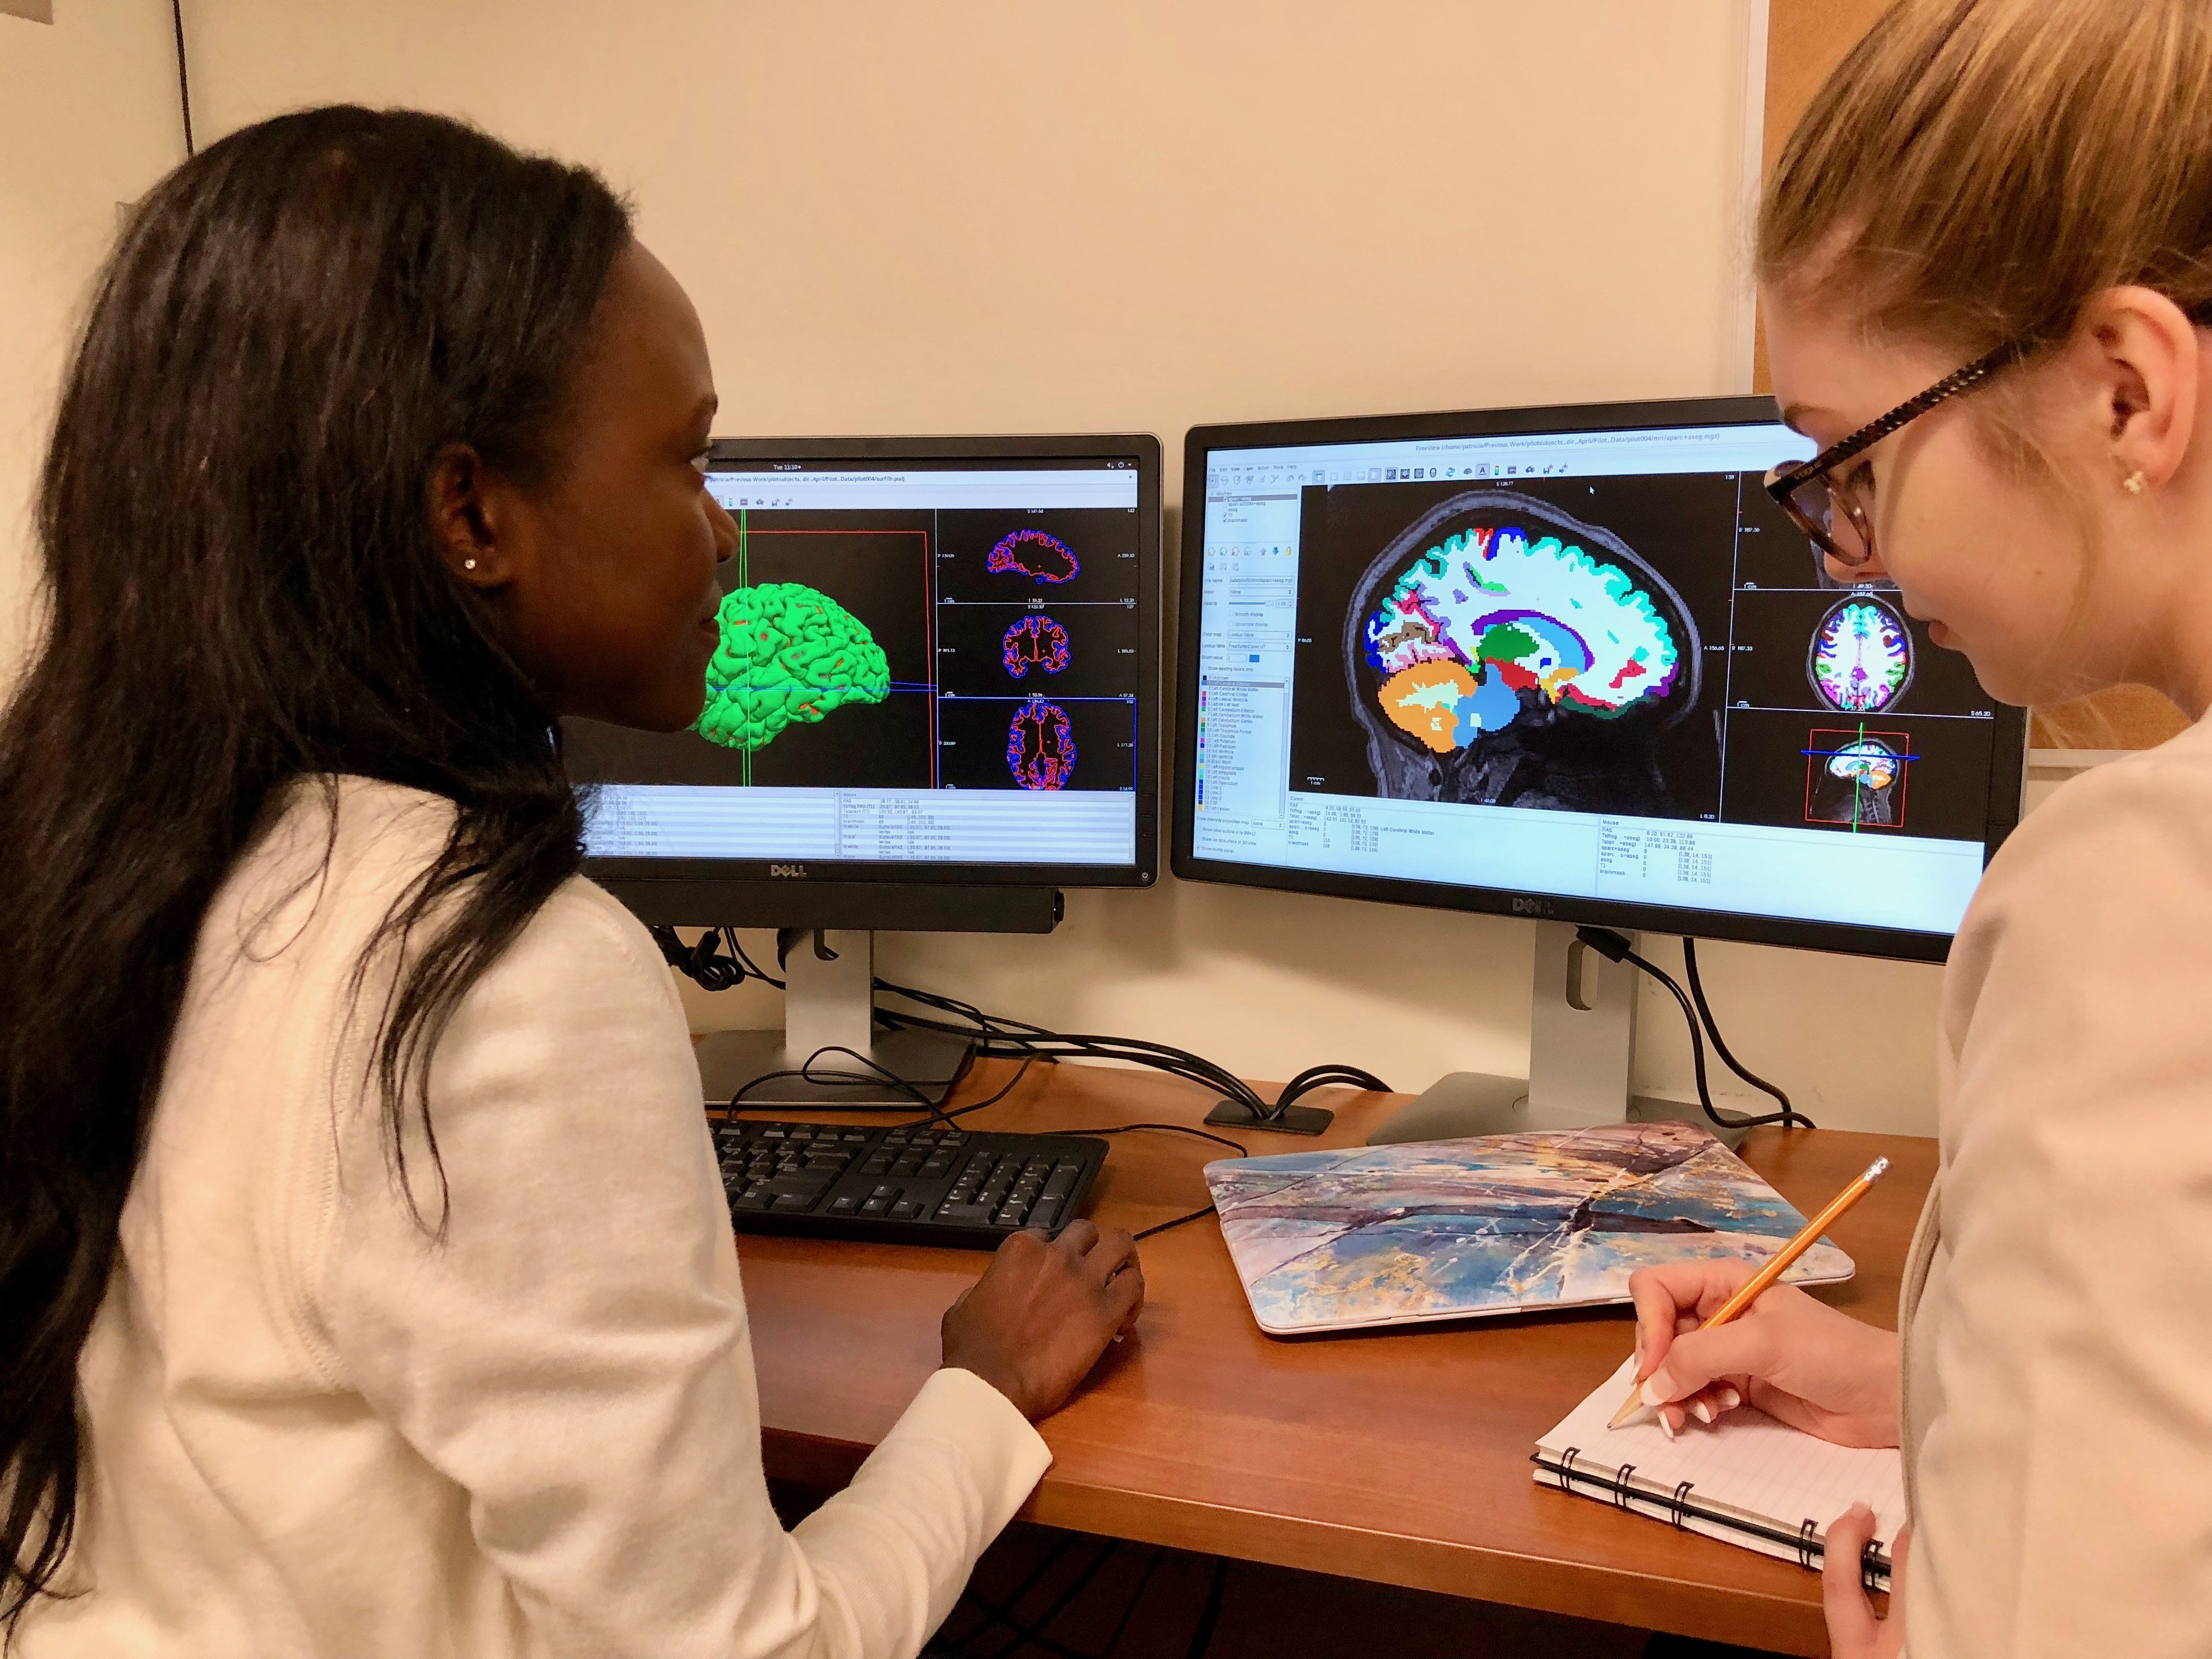 Graduate students processing data from structural Graduate students processing data from structural magnetic resonance imaging scans at the Royal's Brain Imaging Centremagnetic resonance imaging scans at the Royal's Brain Imaging Centre